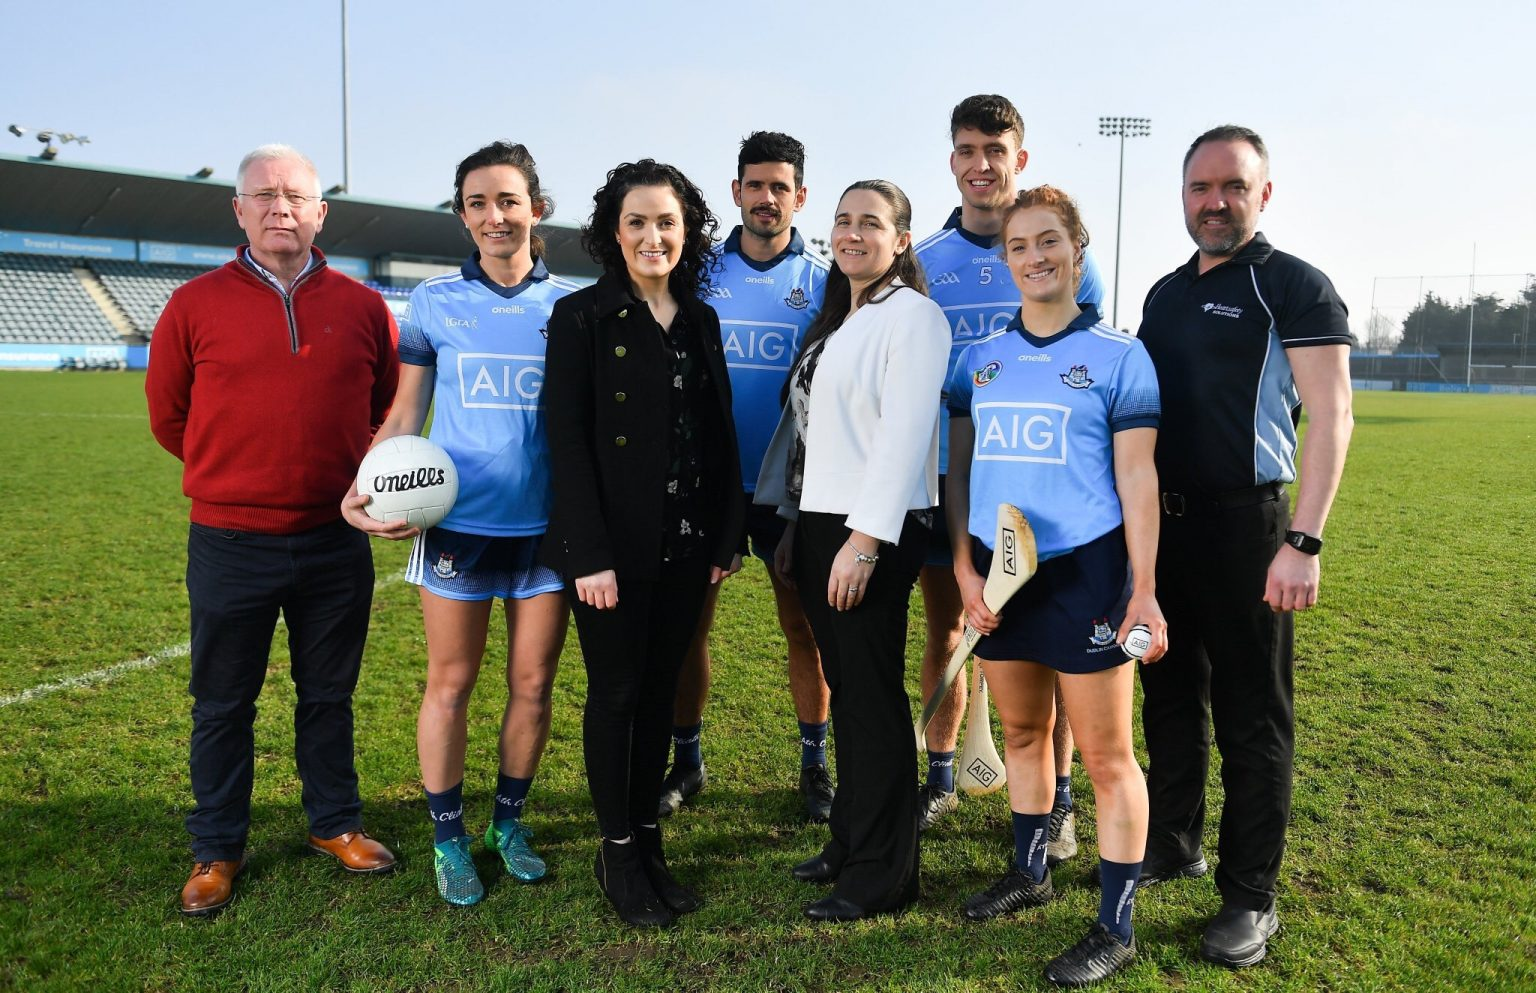 Four Dublin players from Men's and Ladies football, Hurling and Camogie with members from AIG at the launch of the AIB Dub Club Health Initiative